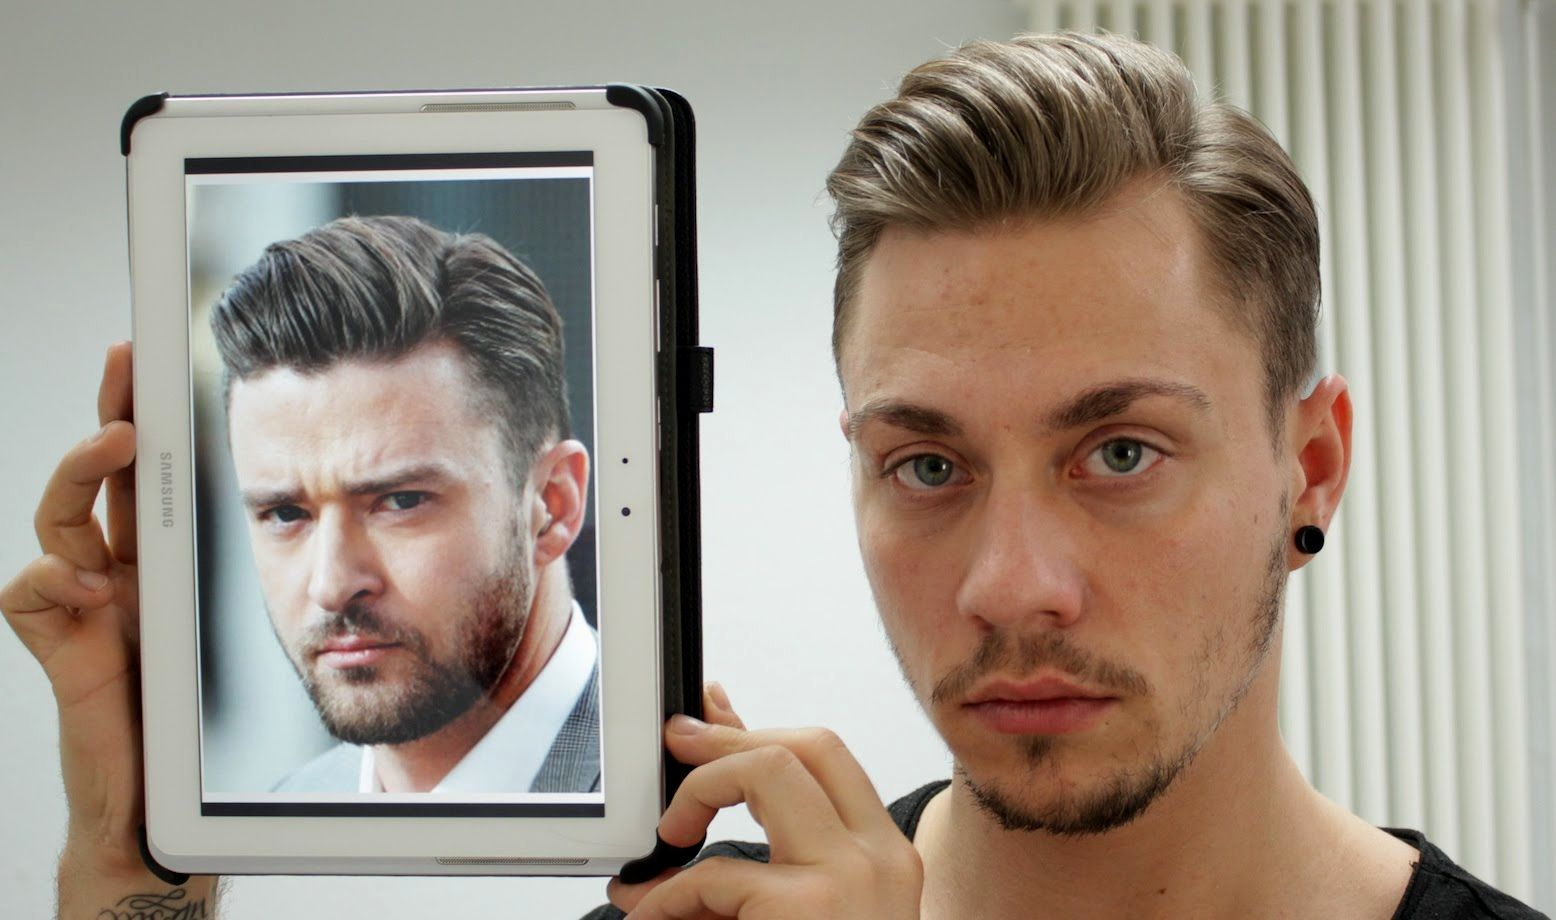 mesmerizing men hairstyles light hair gallery-top man hairstyles light hair image